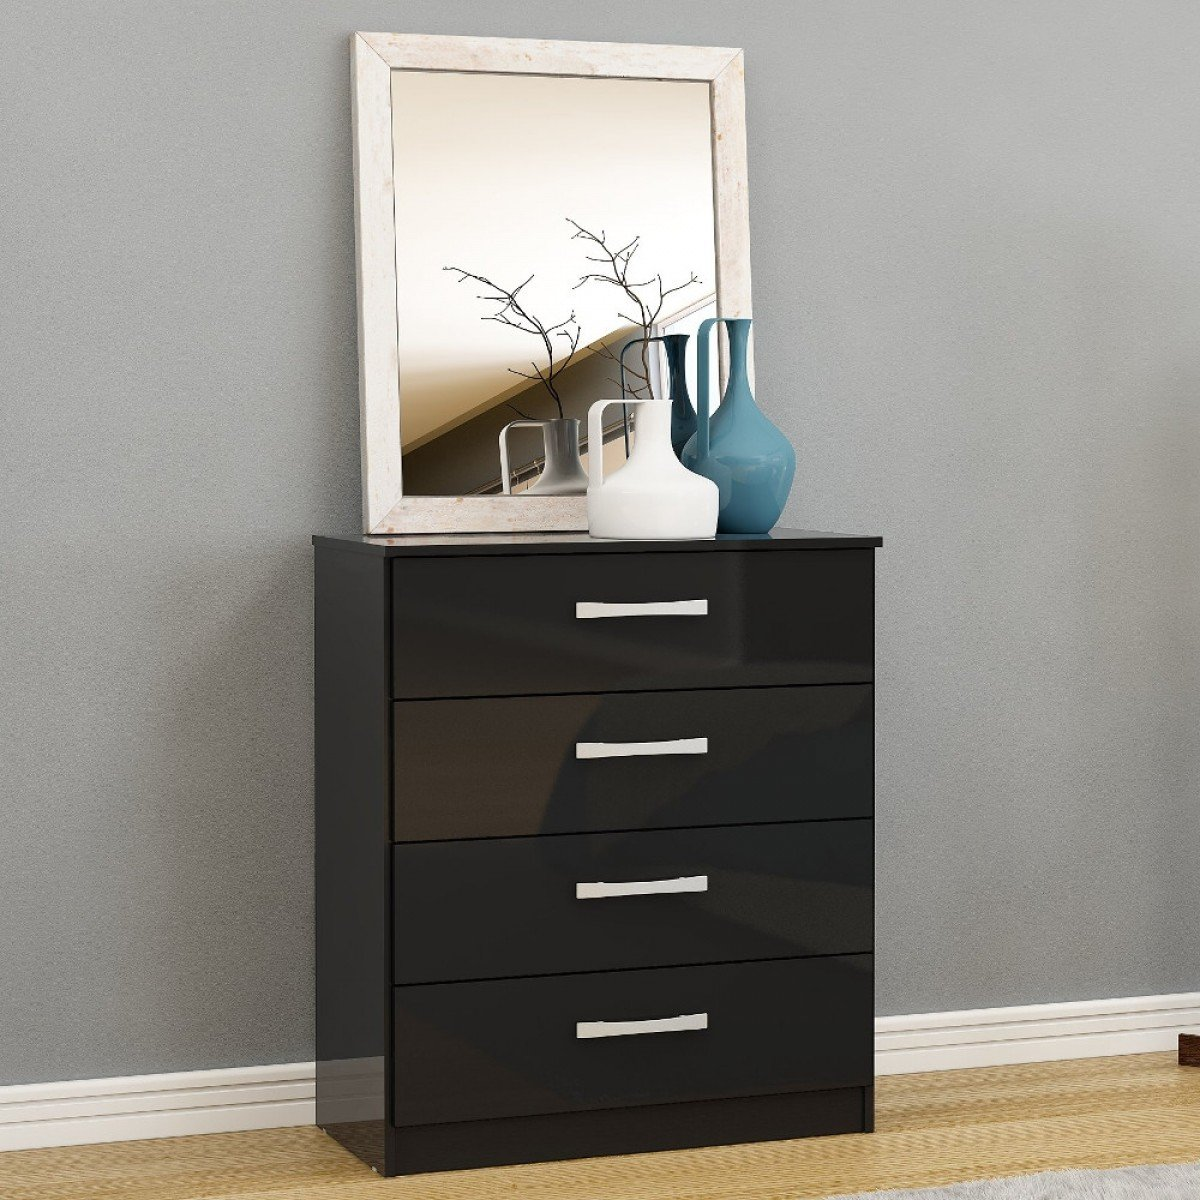 Lynx 4 Drawer Chest Black